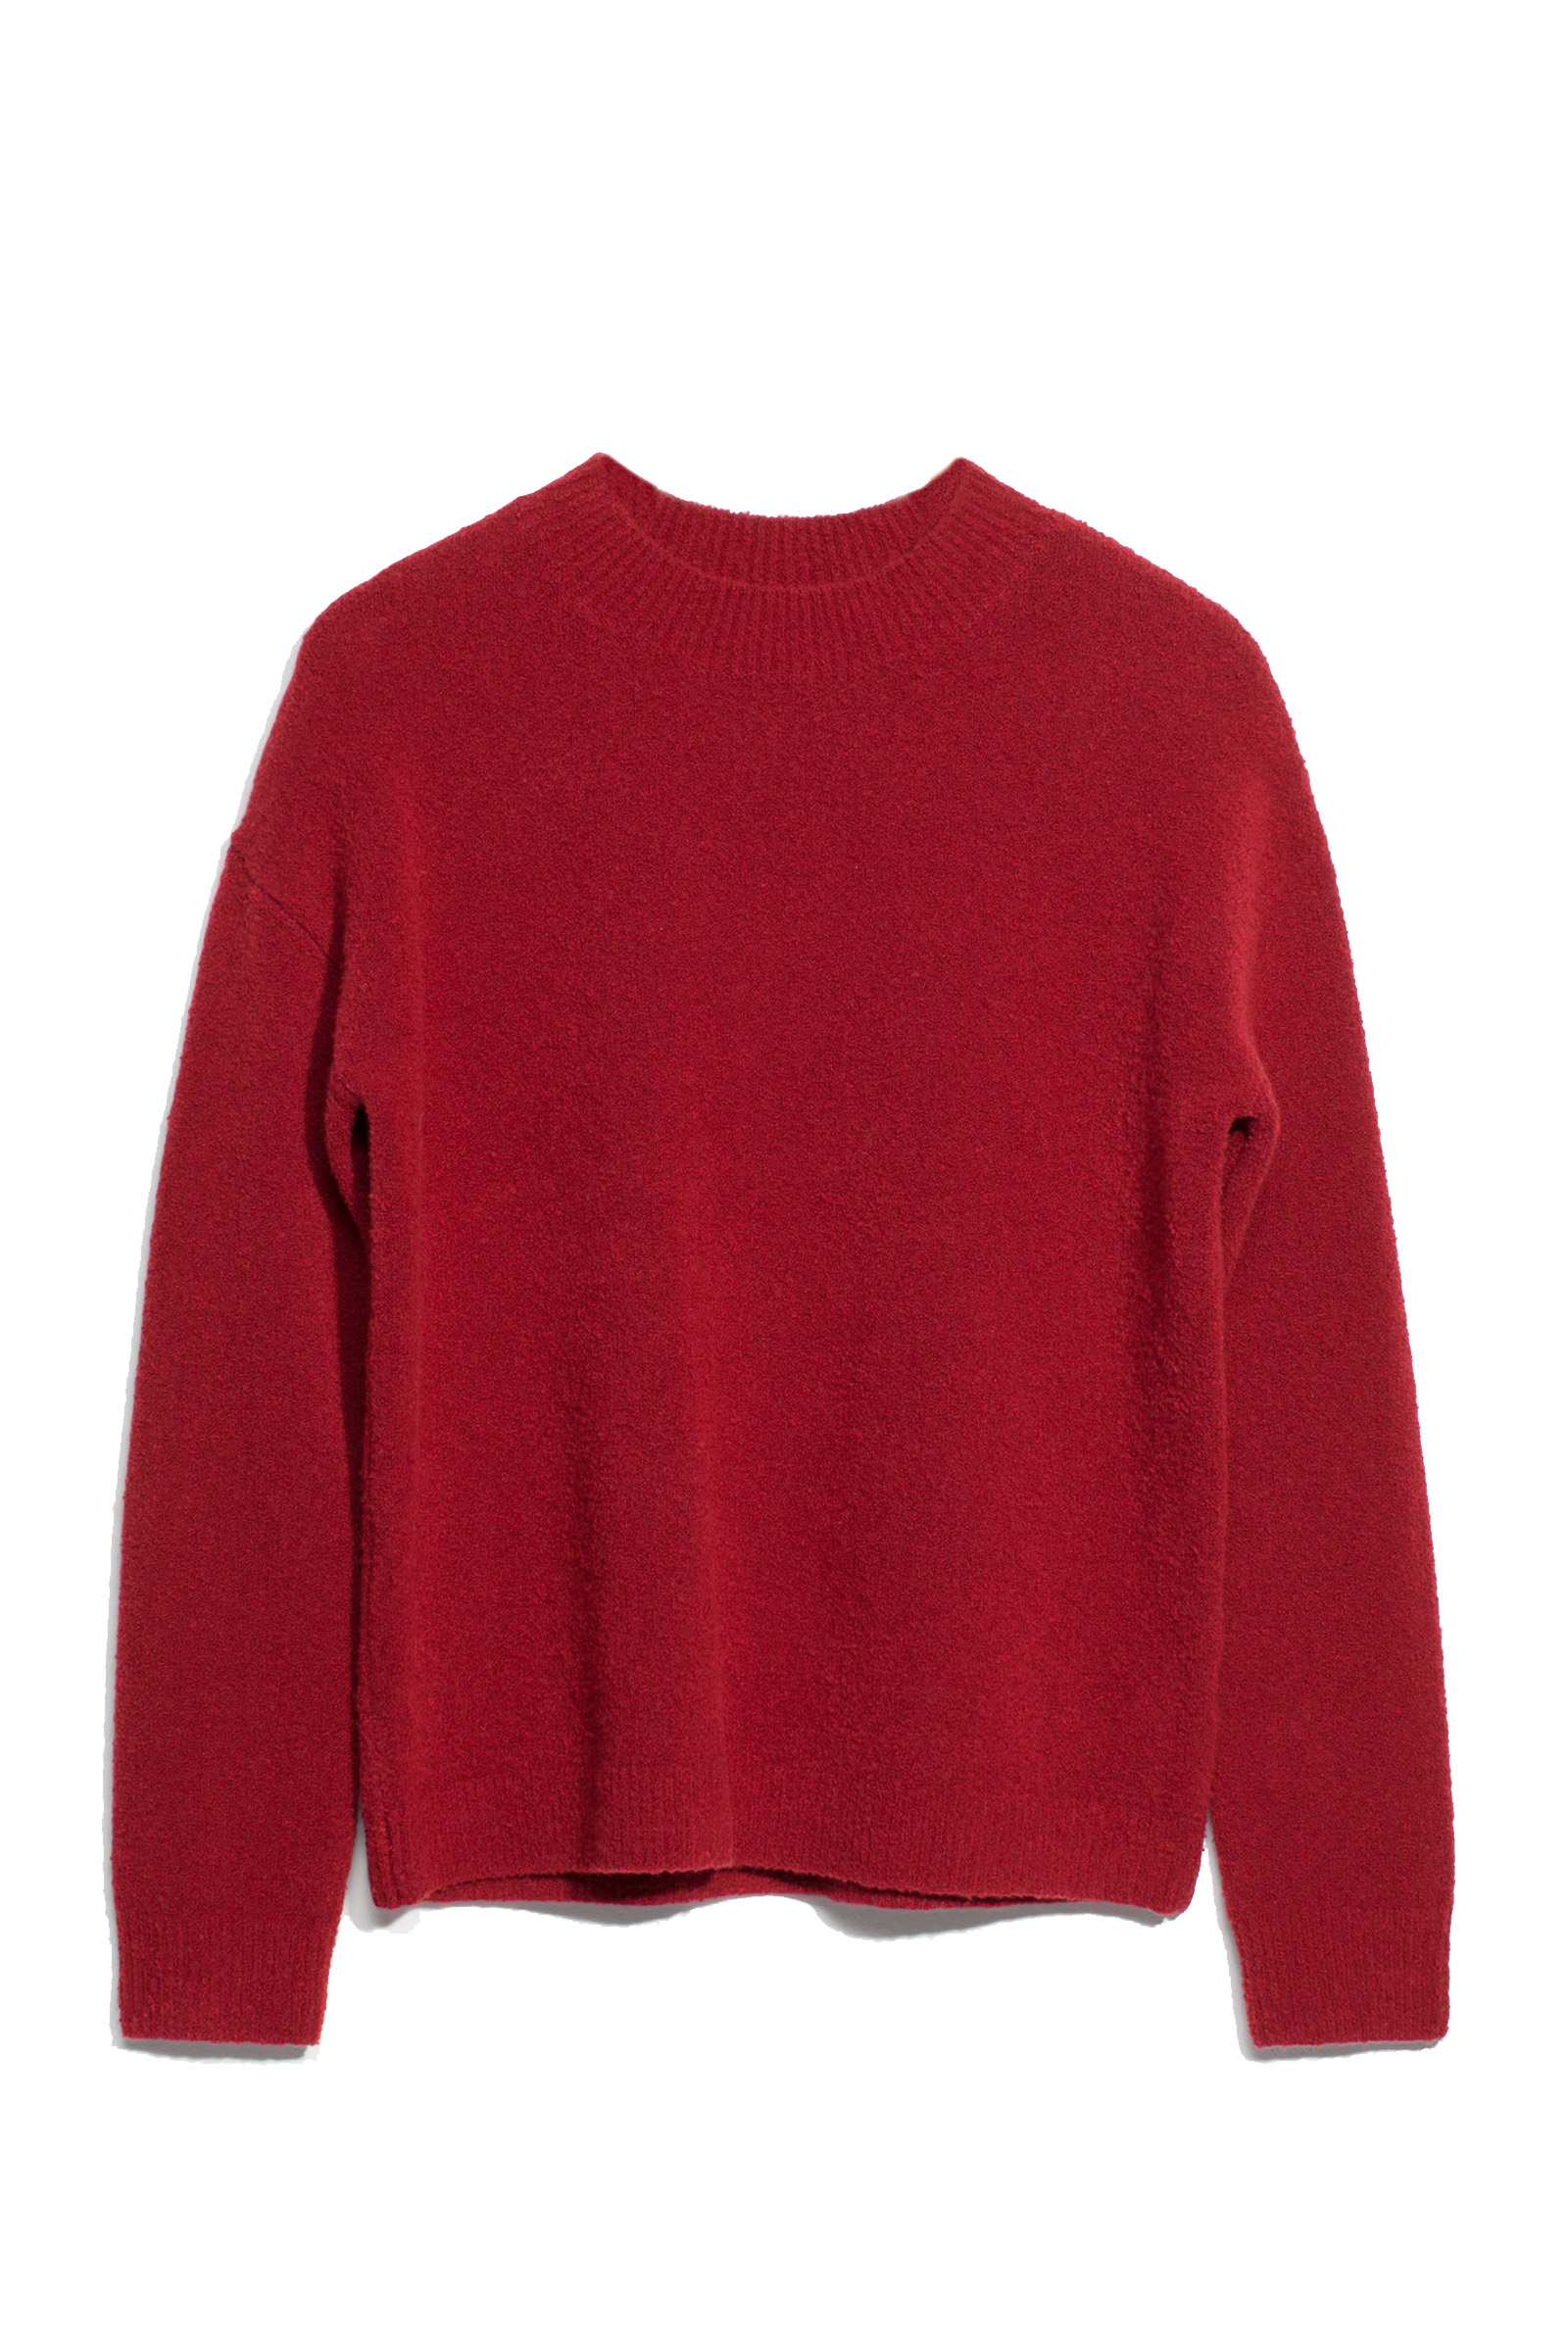 Click to Buy & Other Stories Jumper